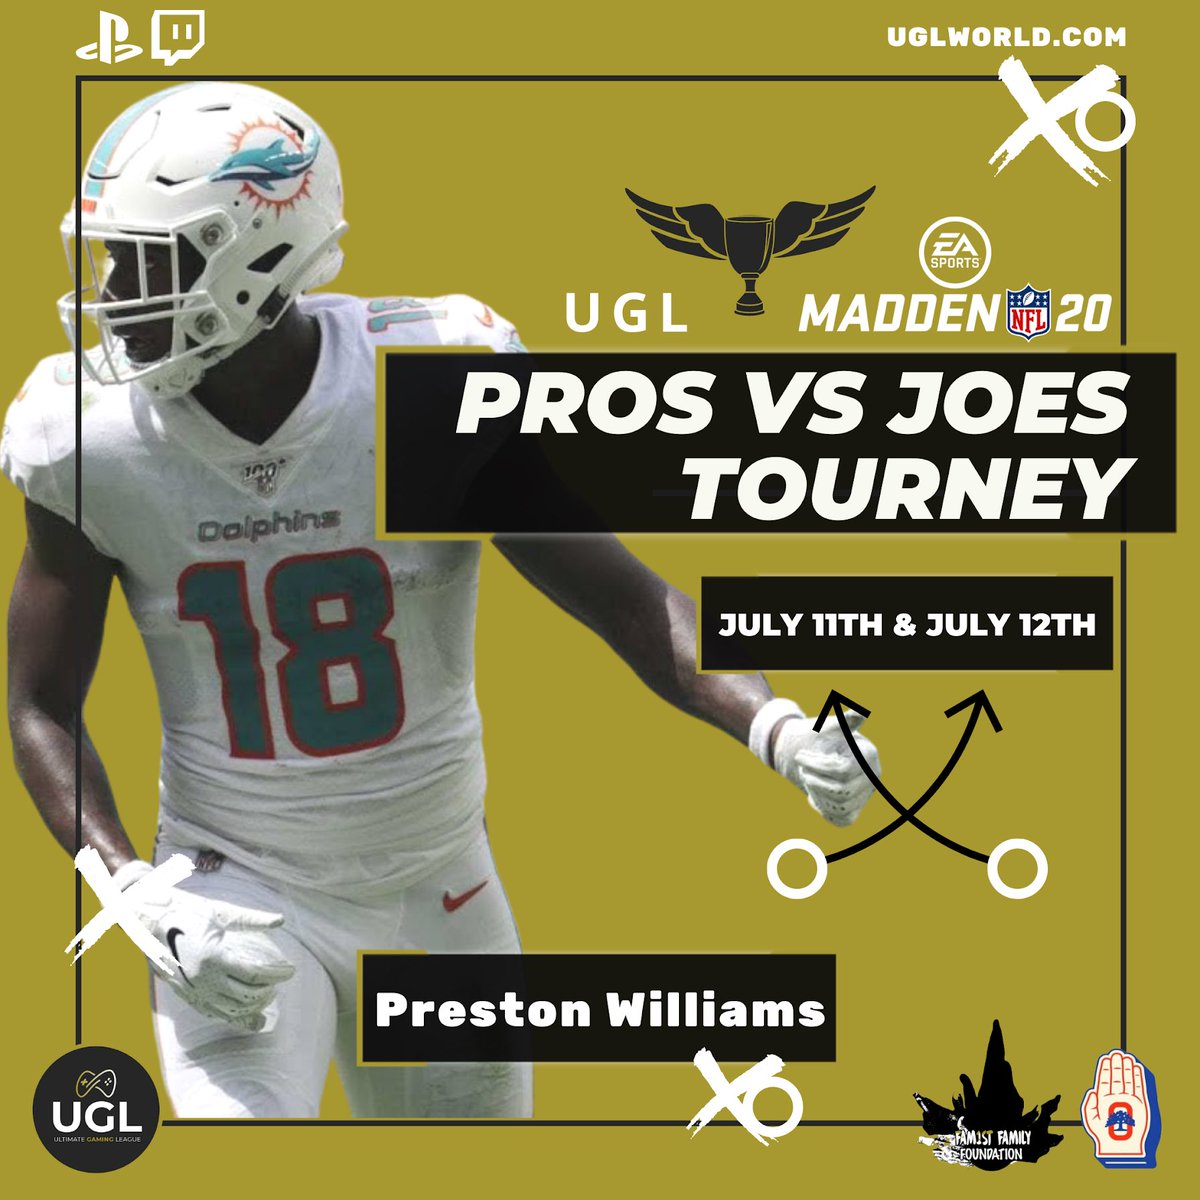 Preston Williams, Wide Receiver for Miami Dolphins , on the pro roster — Pros Vs Joes Tourney July 11th & 12th   The #ProsVsJoes tournament donations will provide support to Covid-19 Relief Funds via: @theoaklandpledge @fam1stfam  #UGL #ProsVsJoes #Covid19Relief #FamilyFirst pic.twitter.com/HjVKQGtWZ3